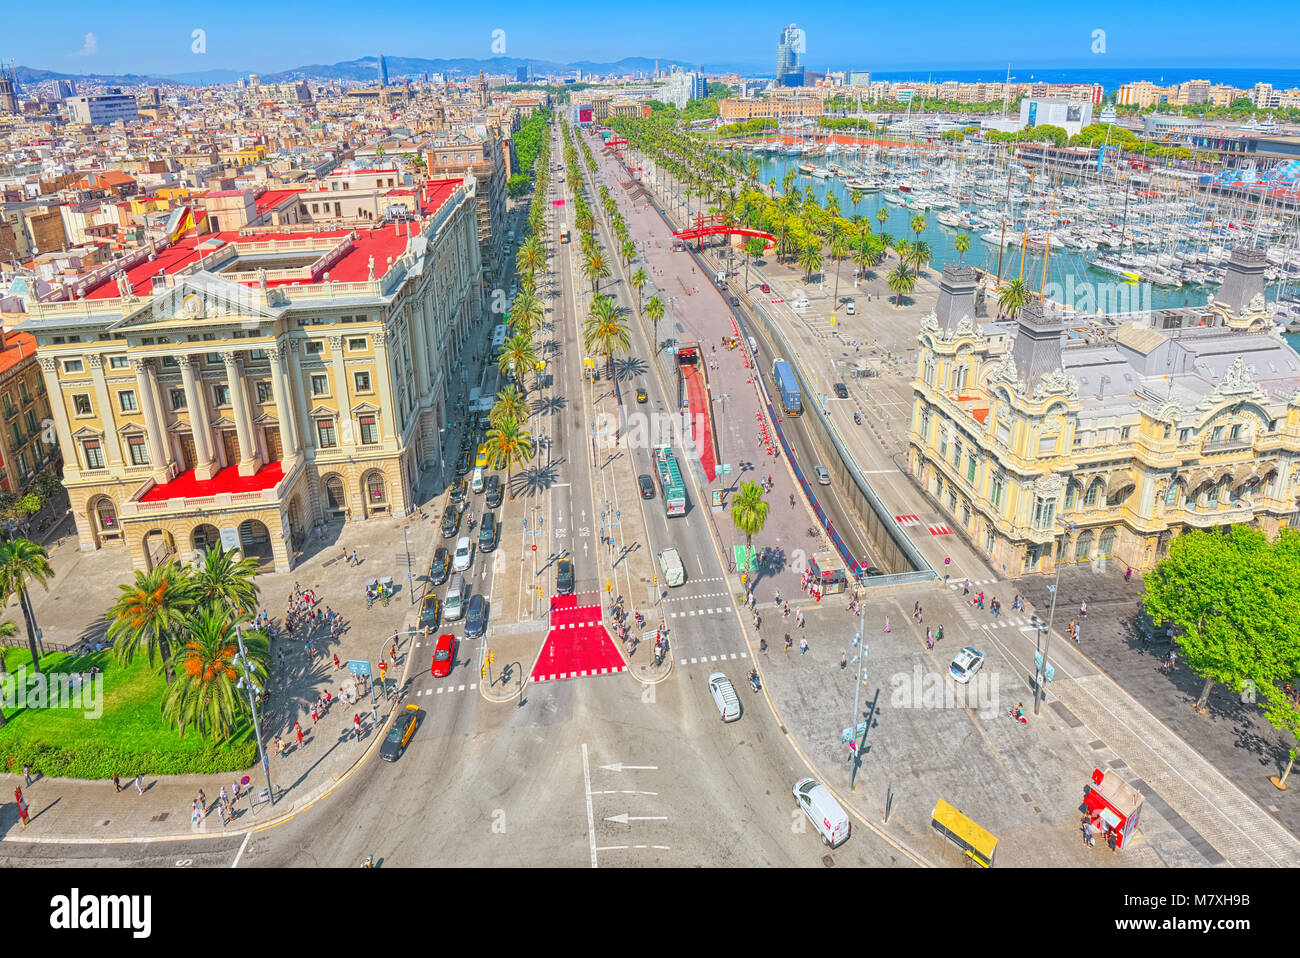 Barcelona- capital of the autonomy of Catalonia. Panorama from the monument to Christopher Columbus on the Barcelona. - Stock Image